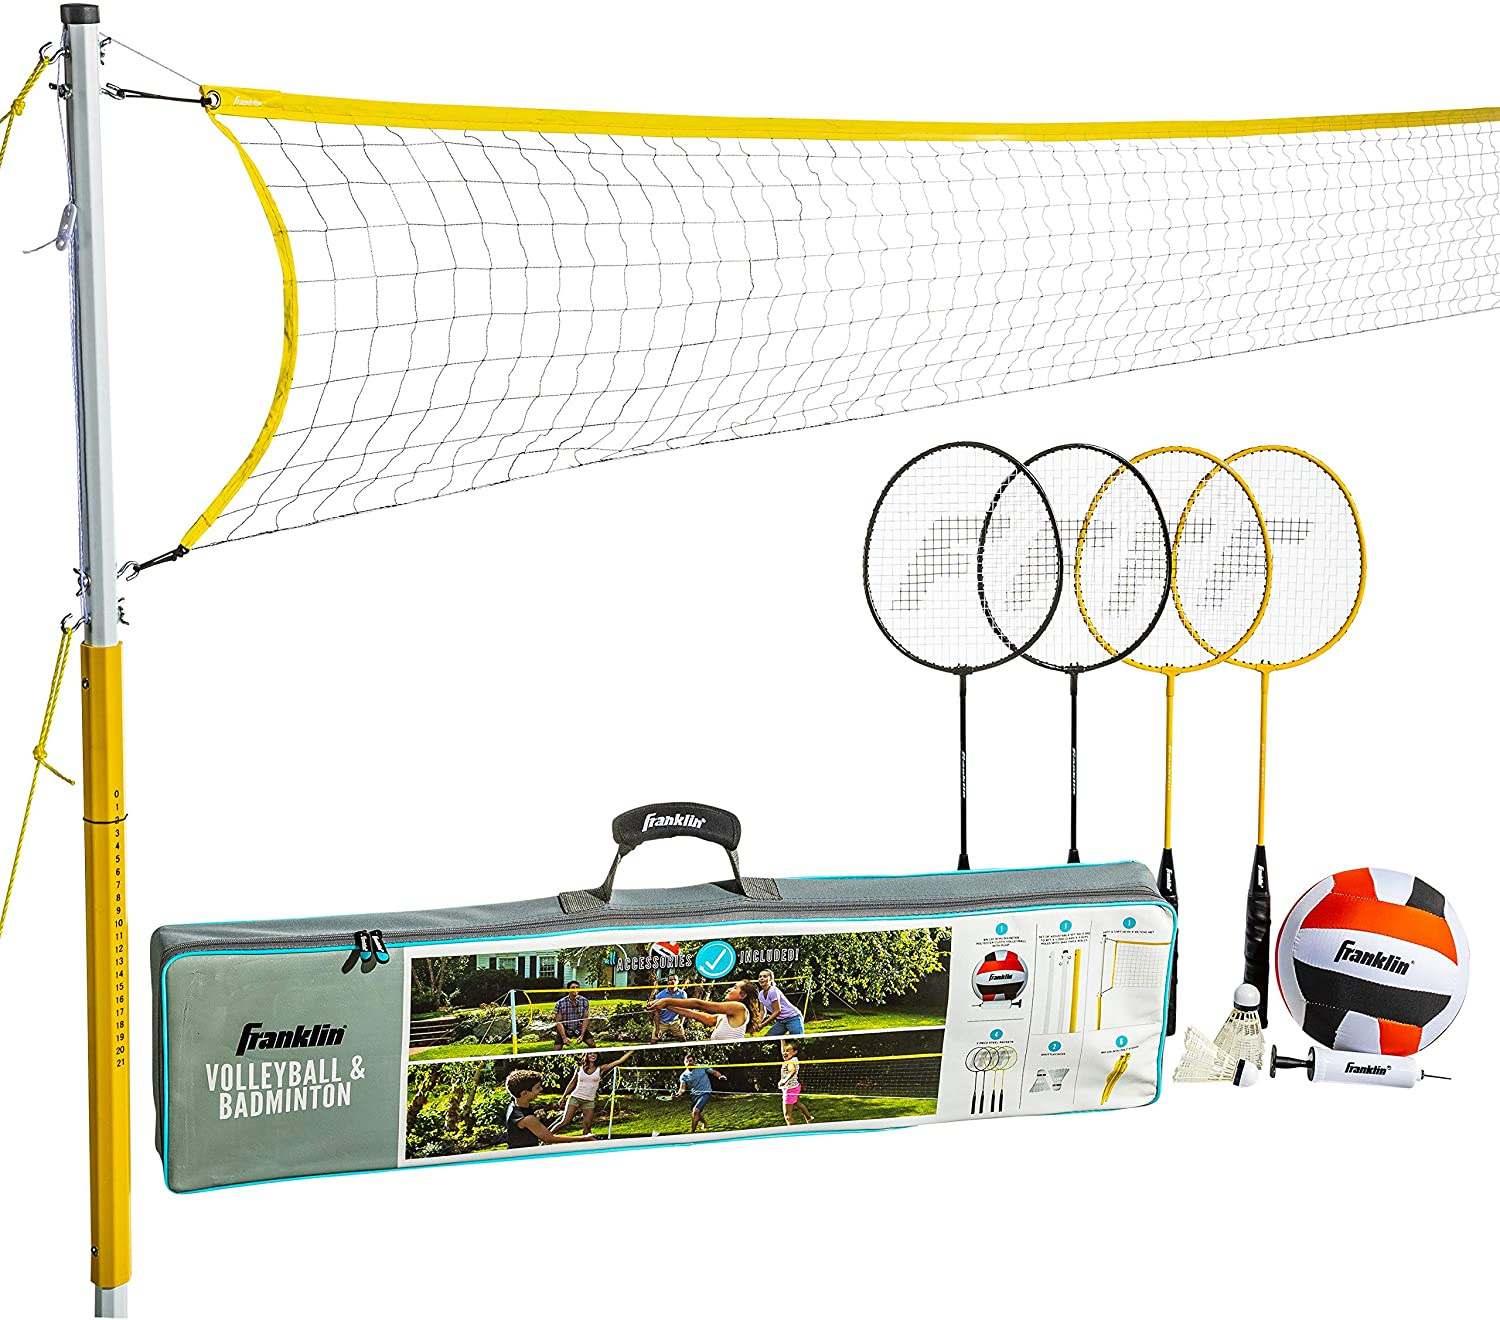 Franklin Sports 50611 Volleyball And Badminton Family Set Volleyball Pump Badminton Rackets Birdies Net And Adjustable Polls Beach Or Backyard Setup Sports Outdoors Amazon Canada